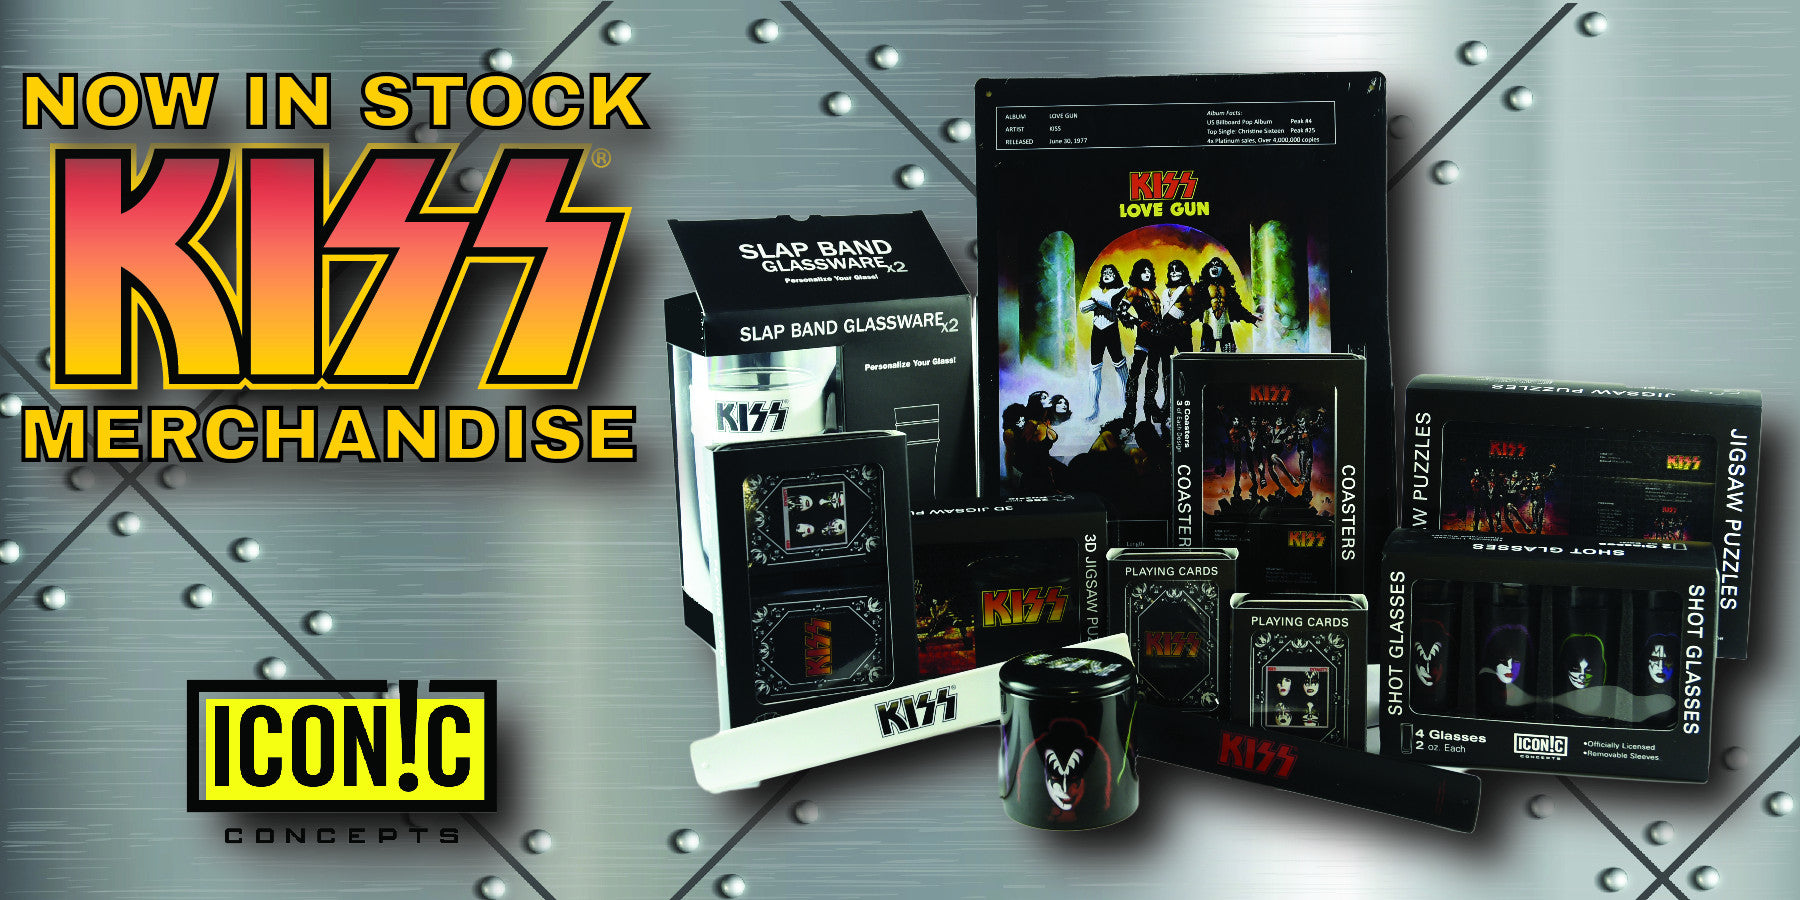 See the All New KISS® Line From Iconic Concepts Including Barware, Puzzles, Playing Cards, Wall Decor and Other Giftware!!!